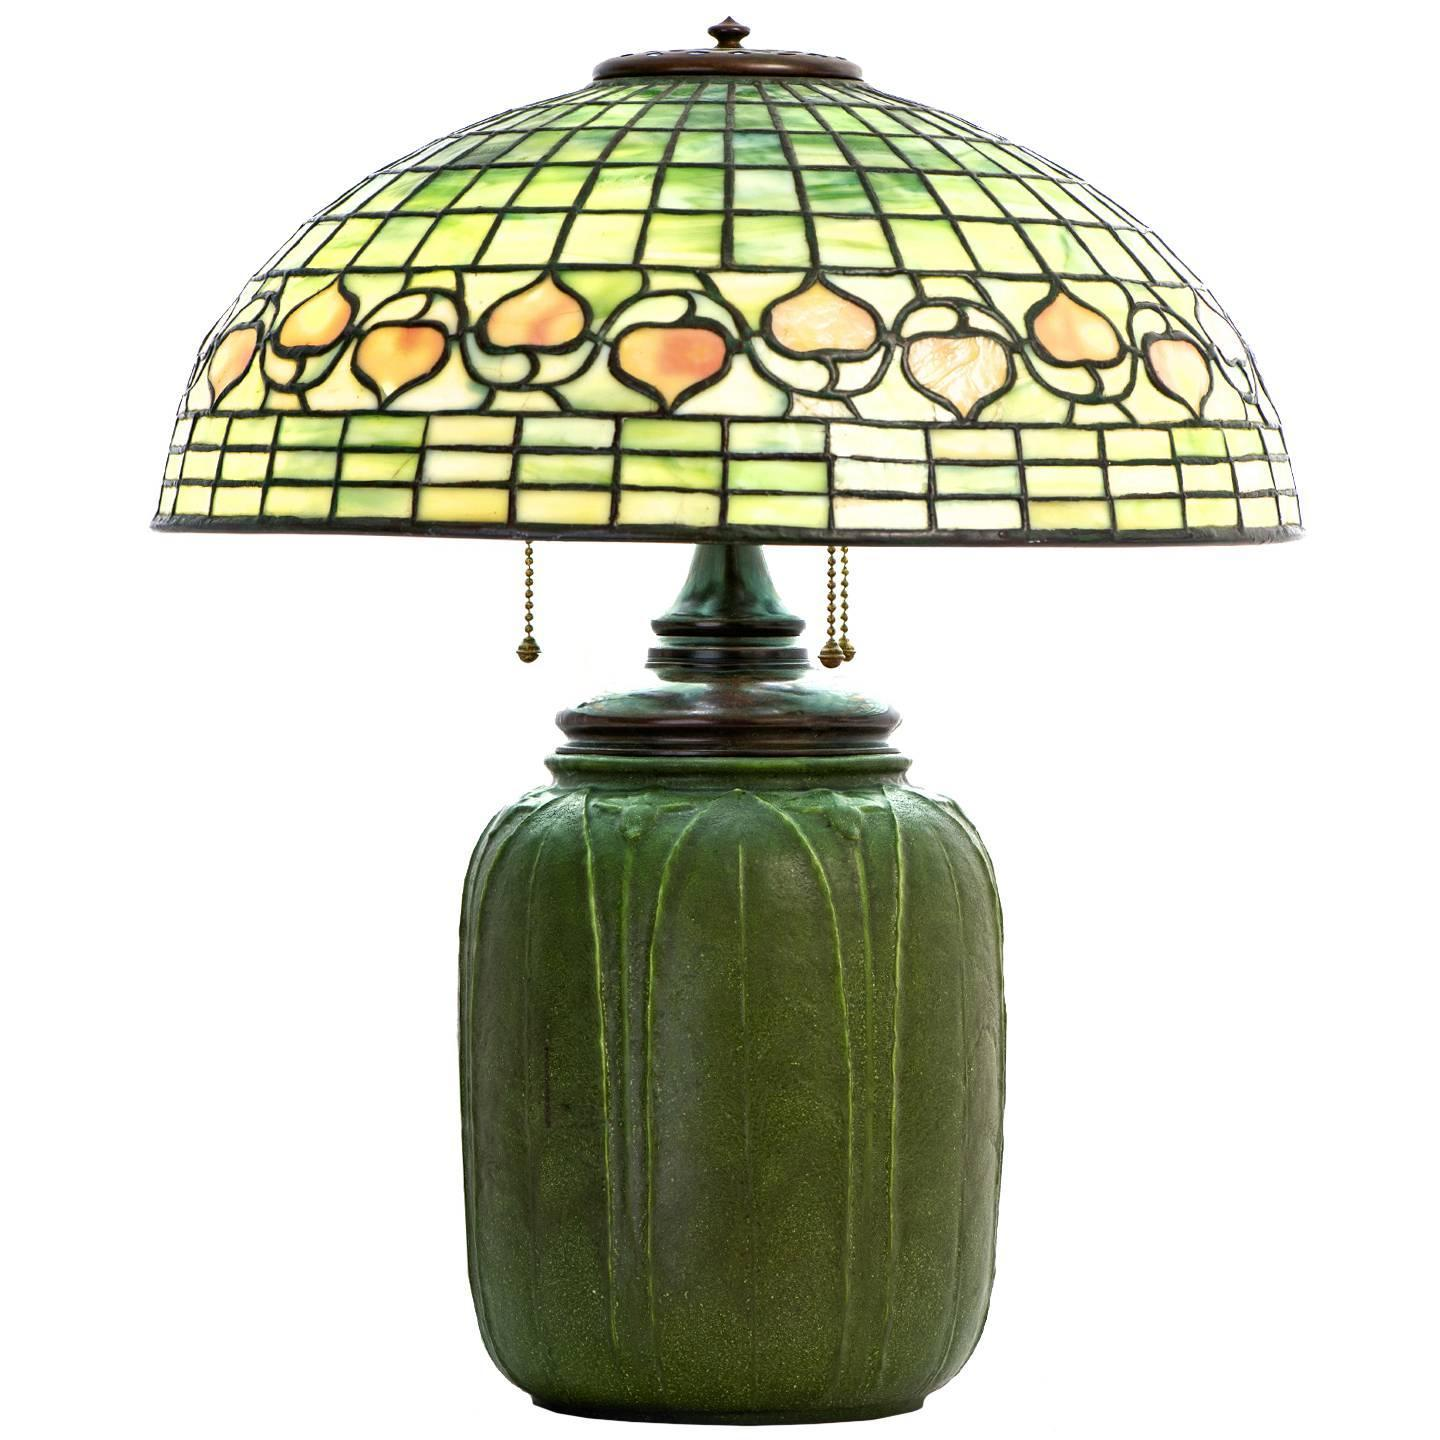 Elegant Signed Tiffany Studios Leaded Glass Acorn Lamp With Grueby Base